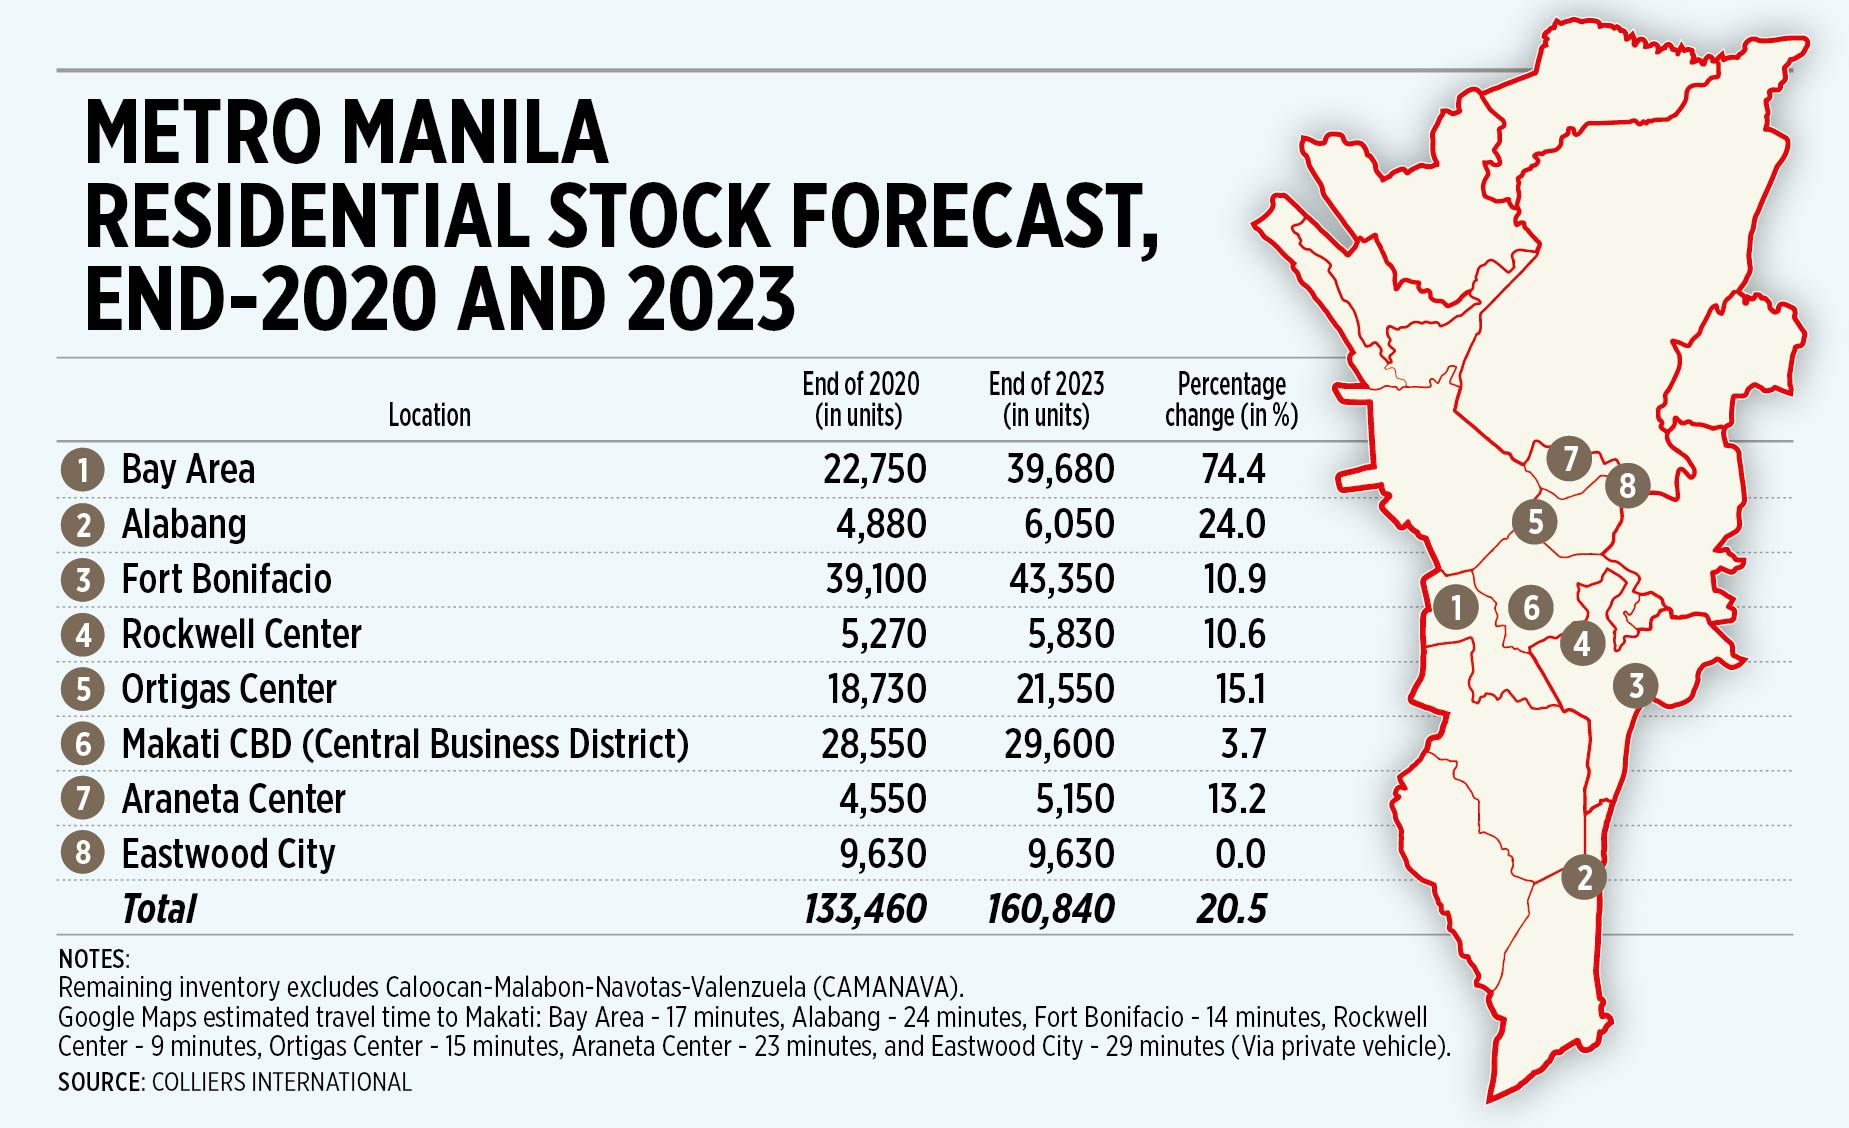 Metro Manila residential stock forecast, end-2020 and 2023